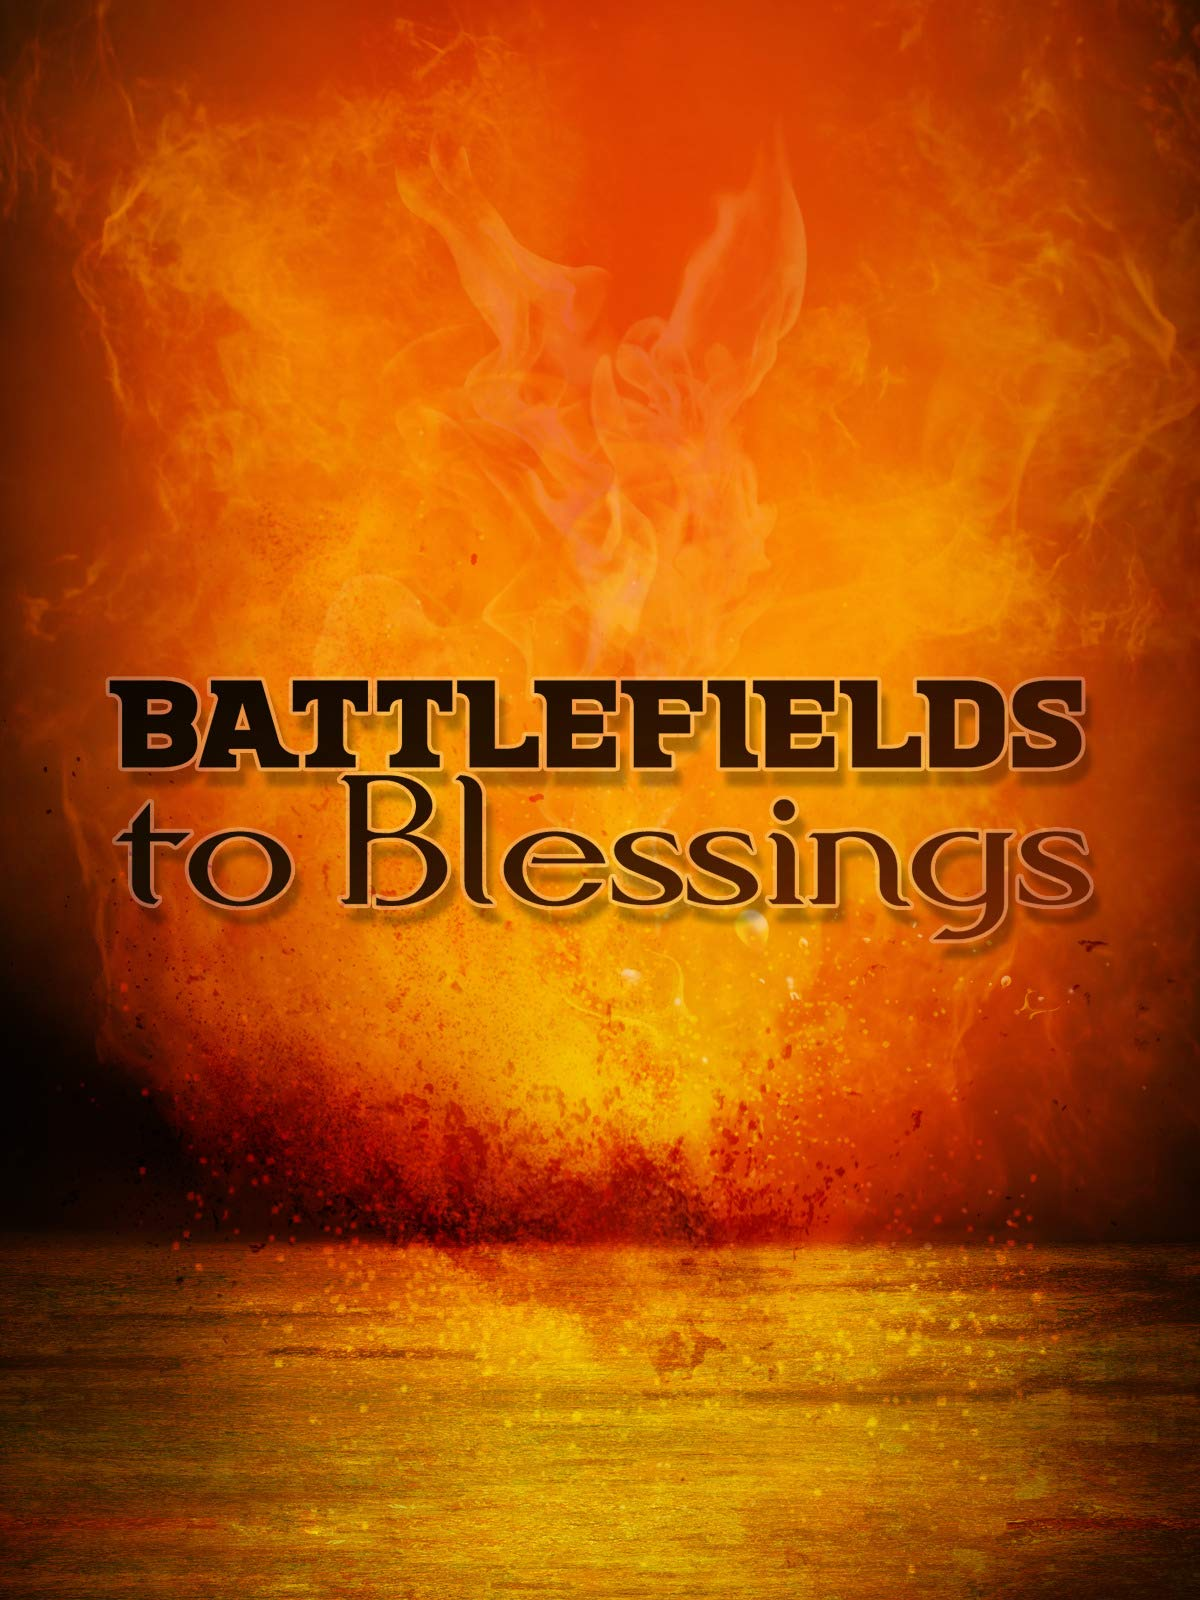 Battlefields to Blessings